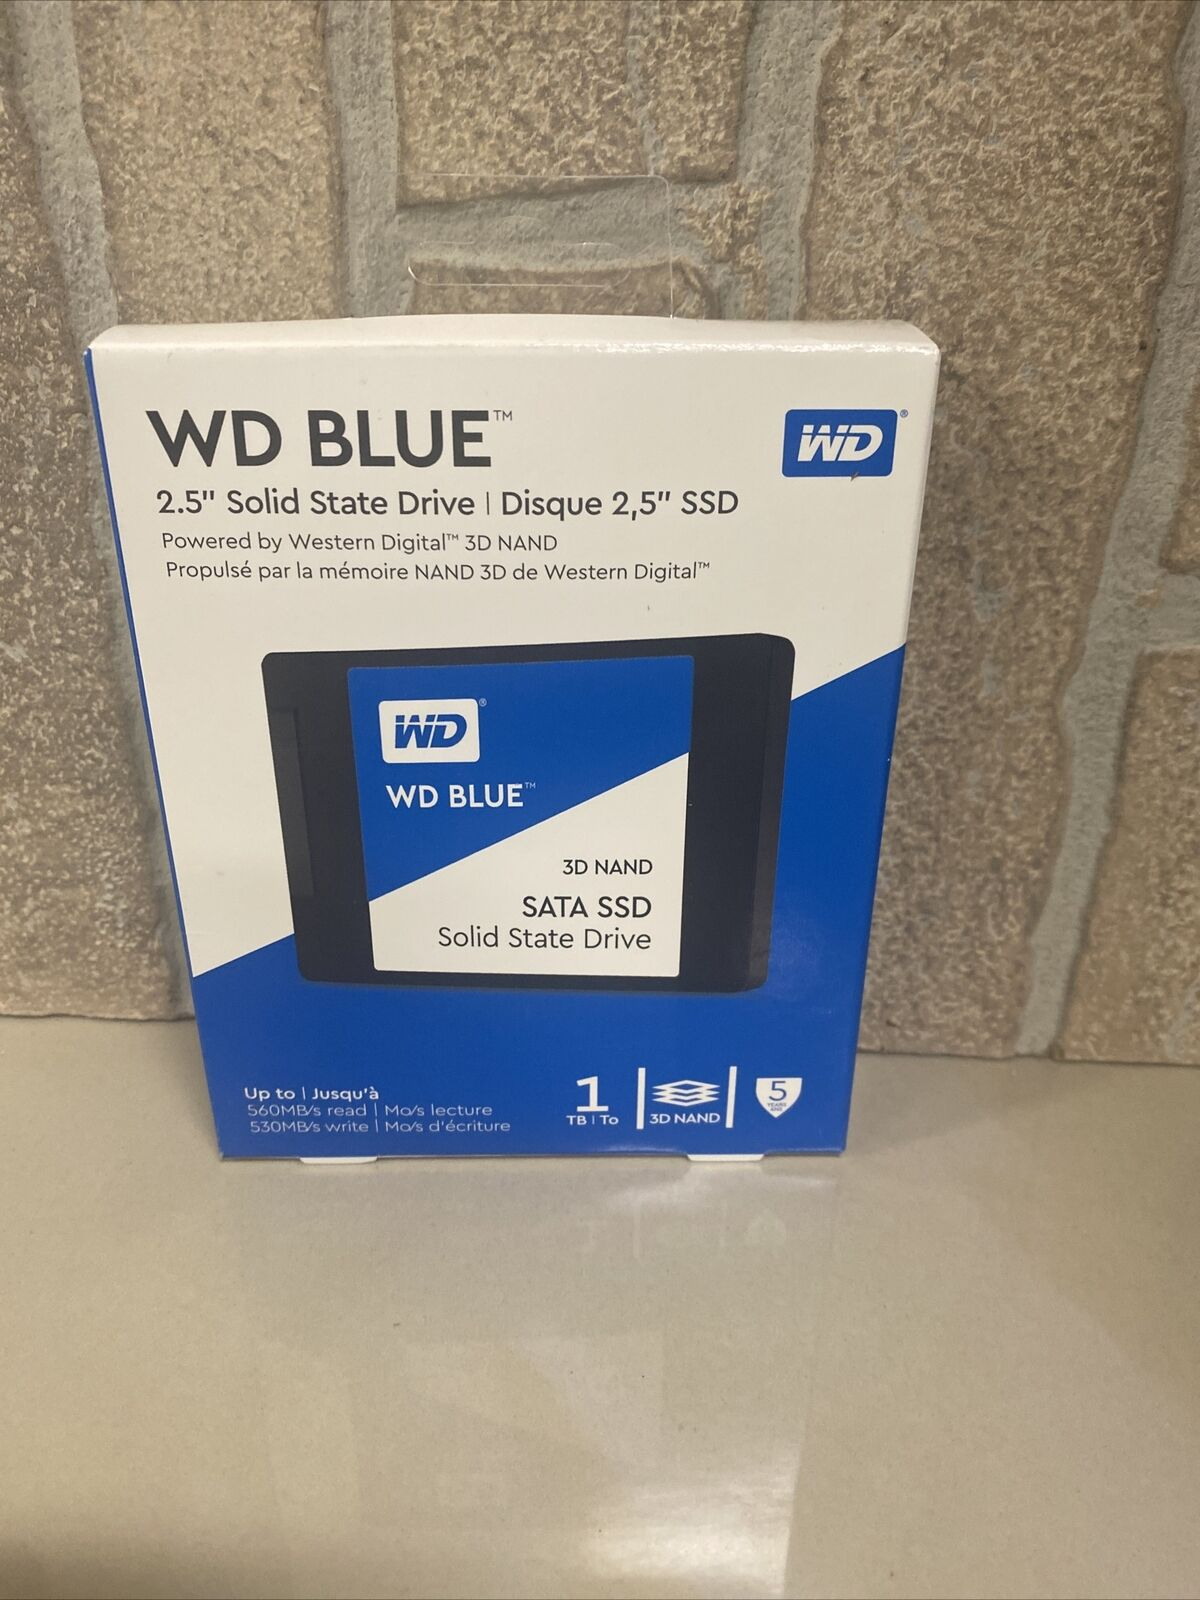 "WD Blue 2.5"" 3D NAND SATA SSD Solid State Drive 1TB - **NEW**. Buy it now for 97.99"